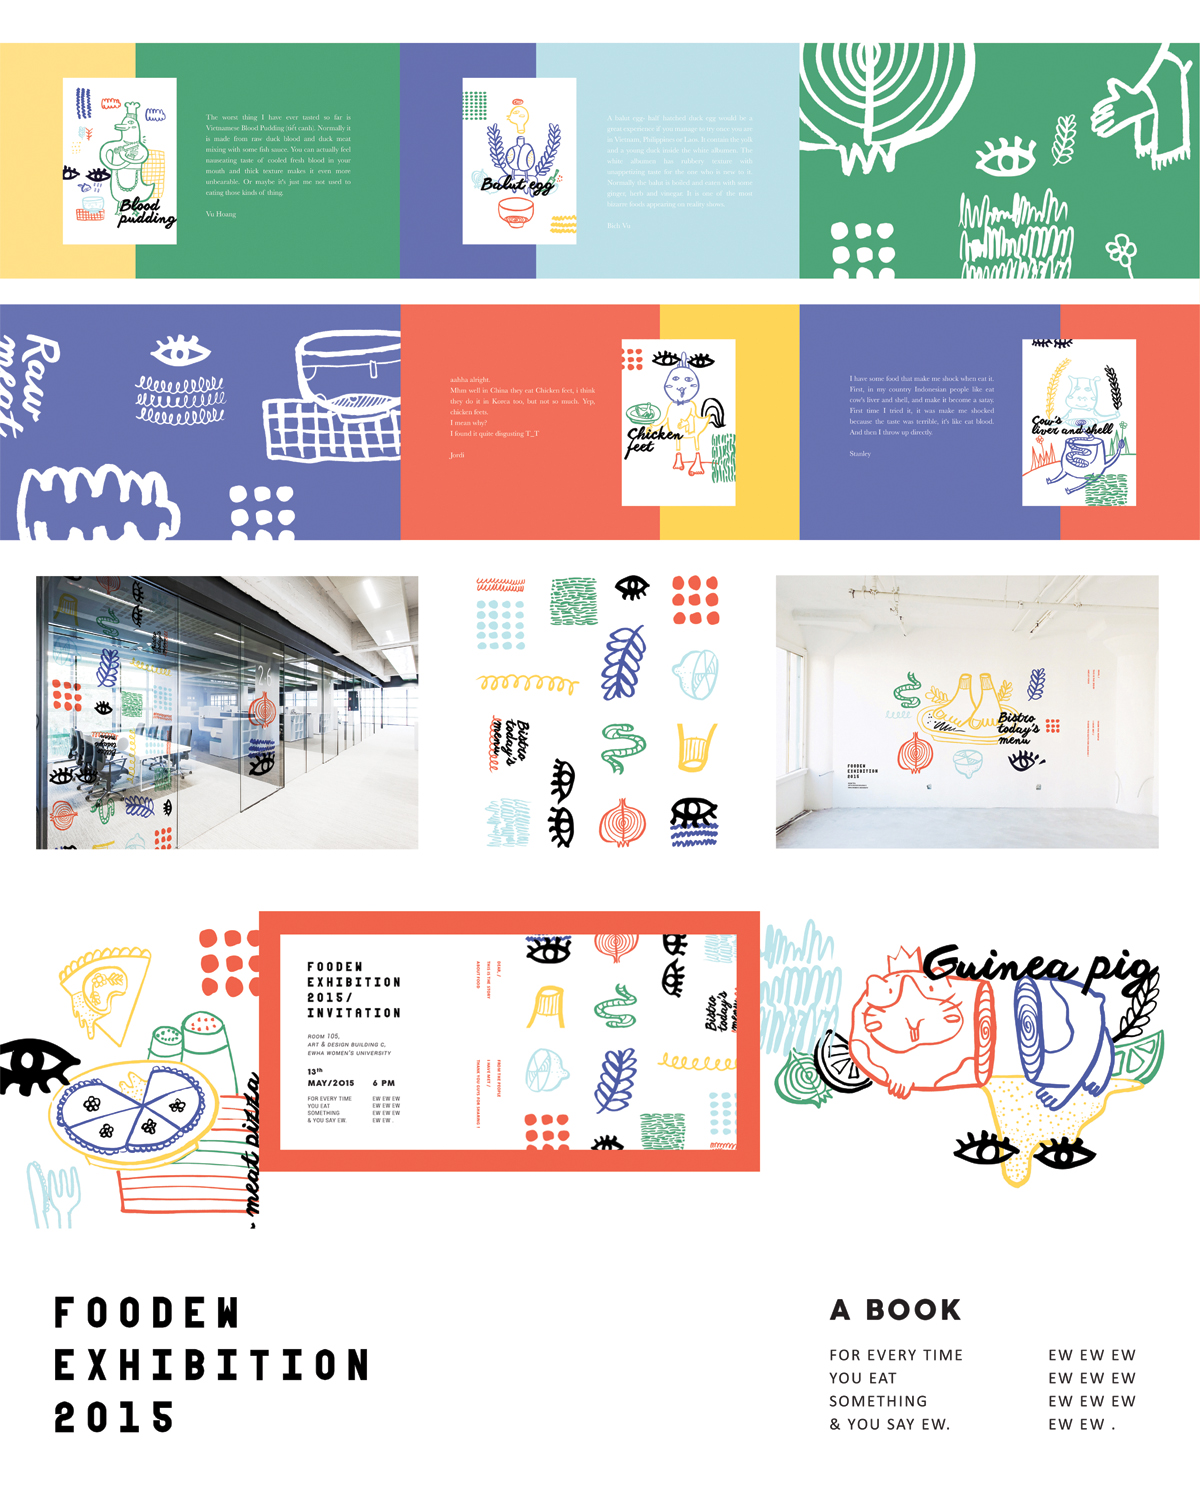 Graphic Design - Uyển Ngọc - Foodew